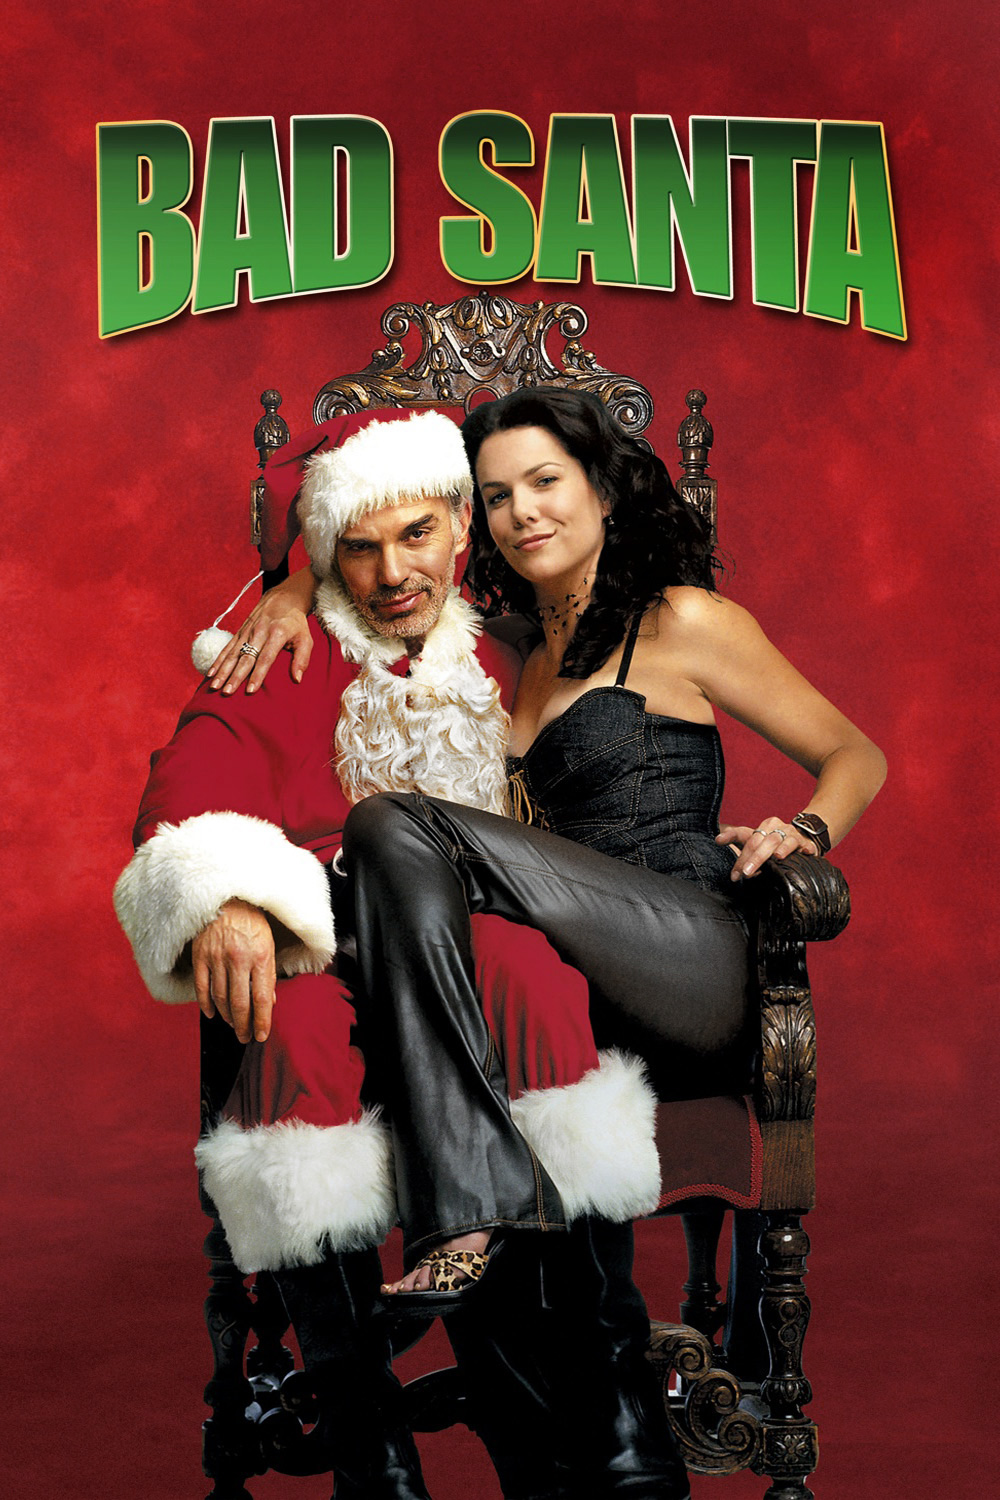 40. Who played Bad Santa in the 2003 film Bad Santa? Billy Bob Thornton